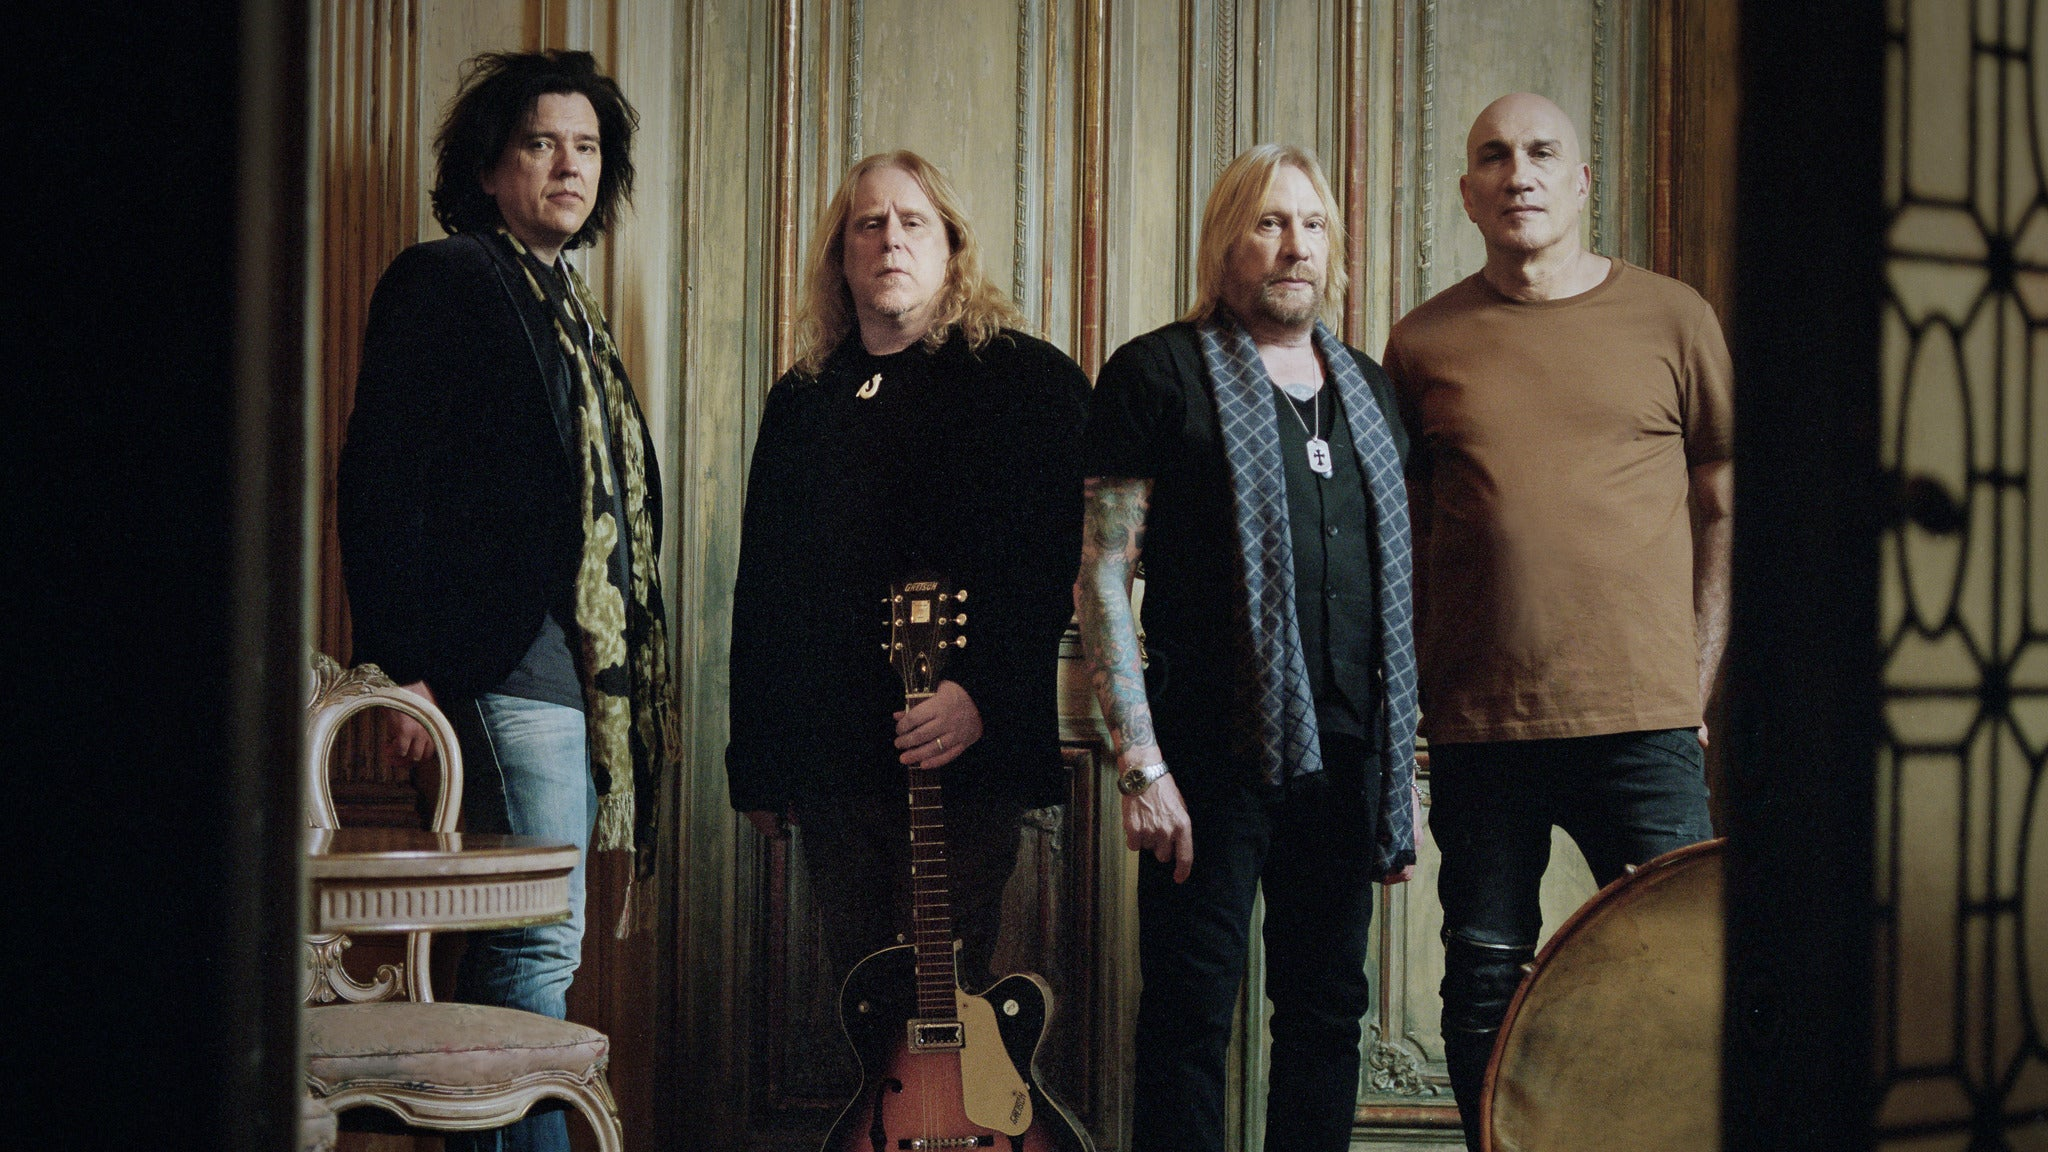 Gov't Mule at Von Braun Center Concert Hall